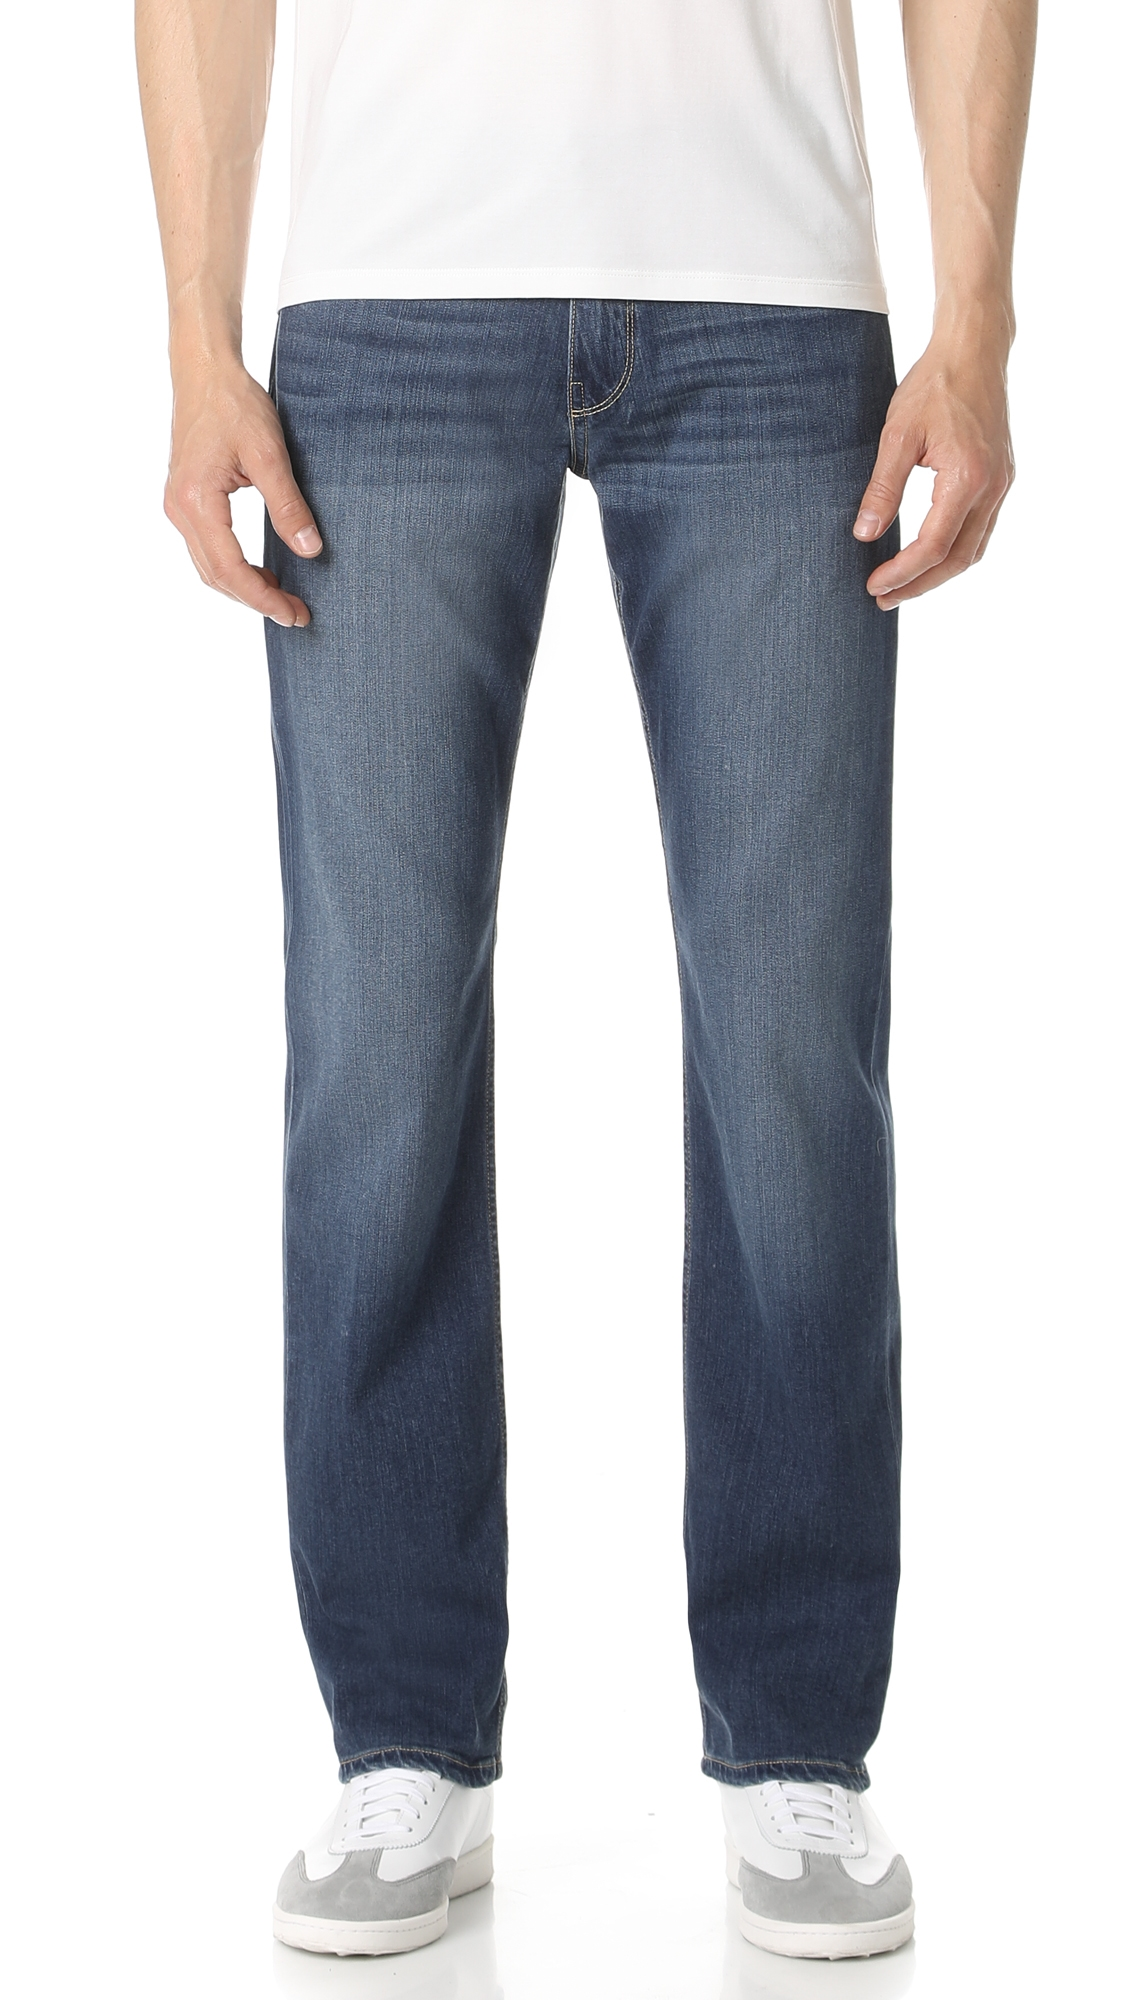 Normandie Birch Jeans